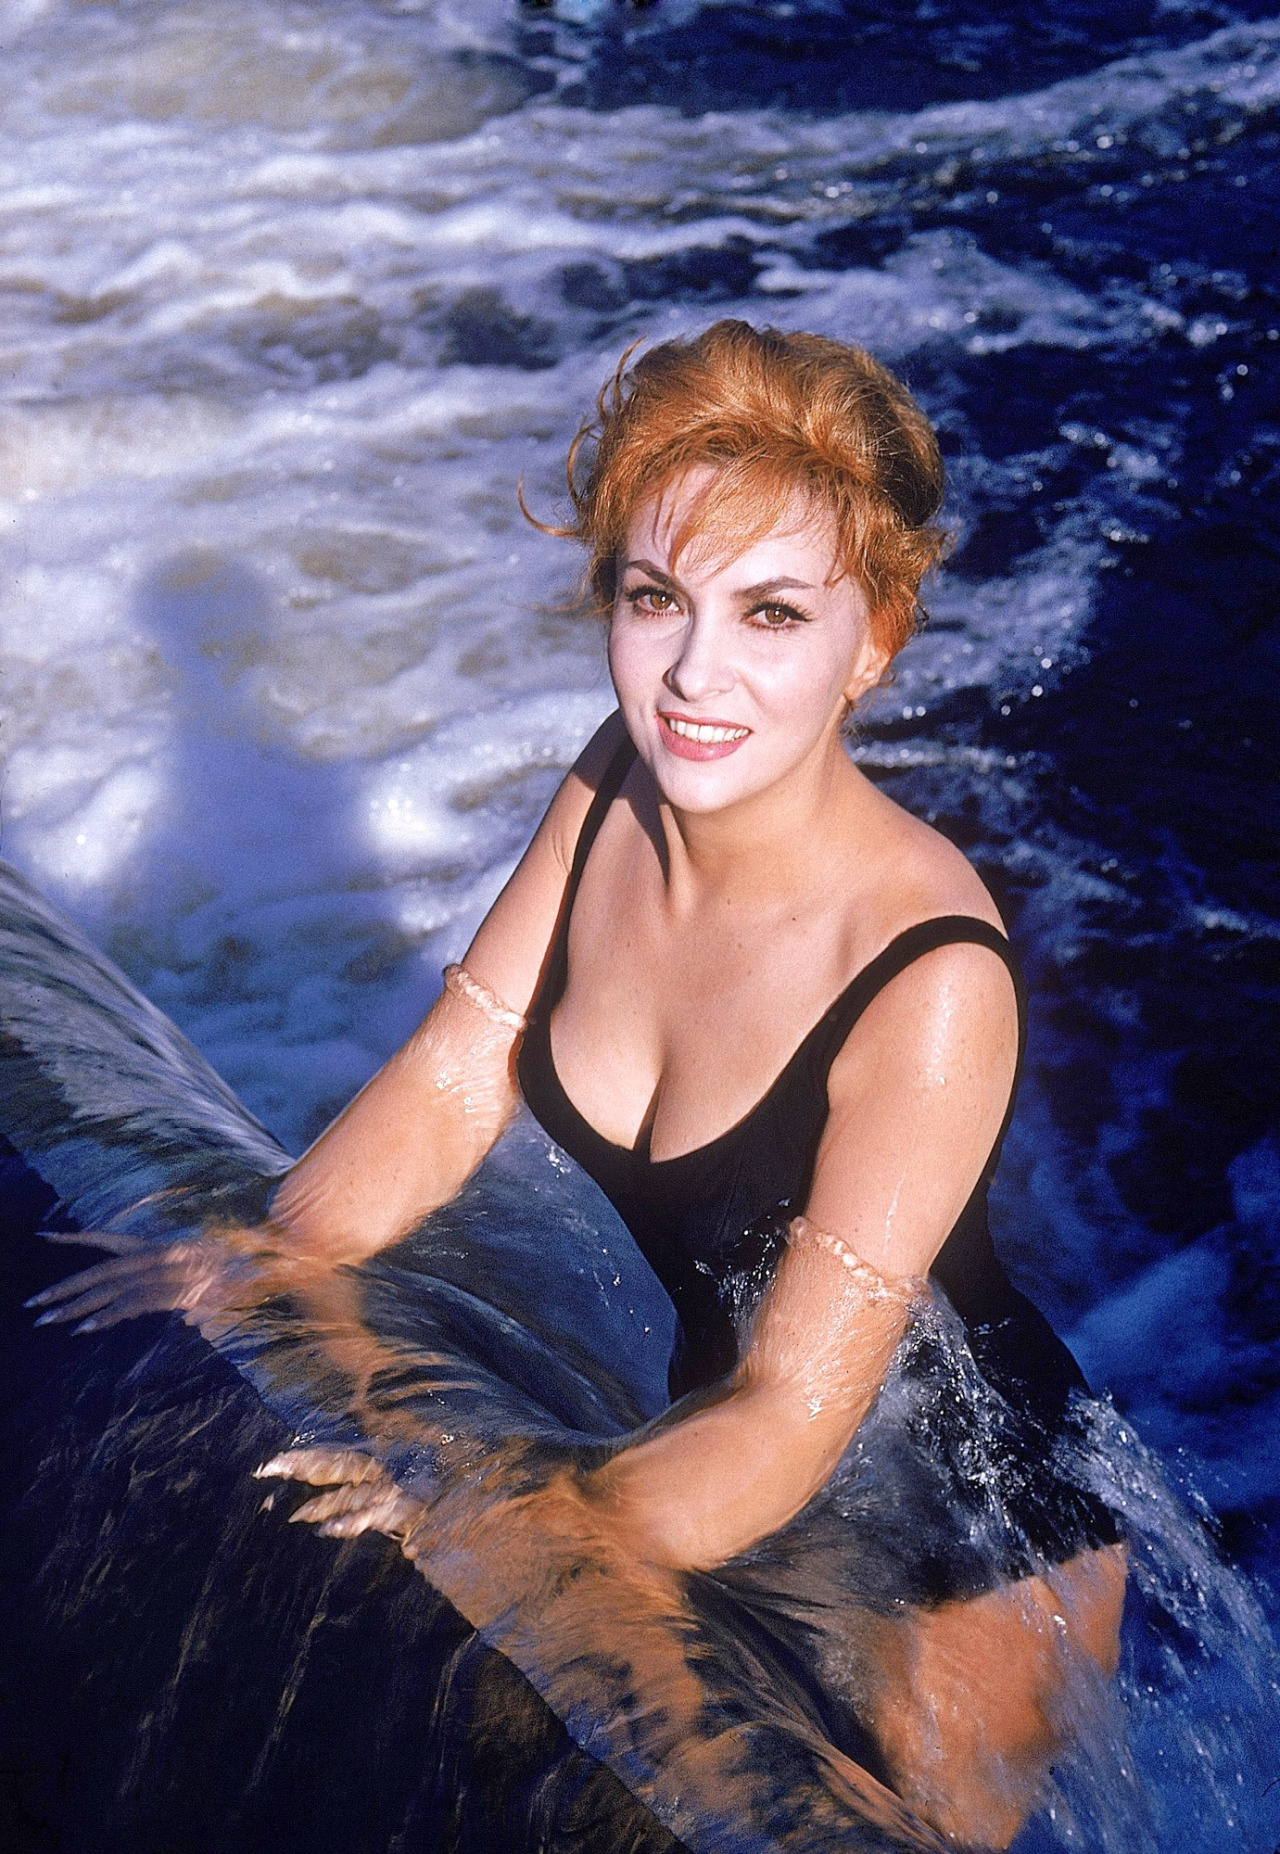 Gina Lollobrigida in a swimming pool. PETER STACKPOLE 1960